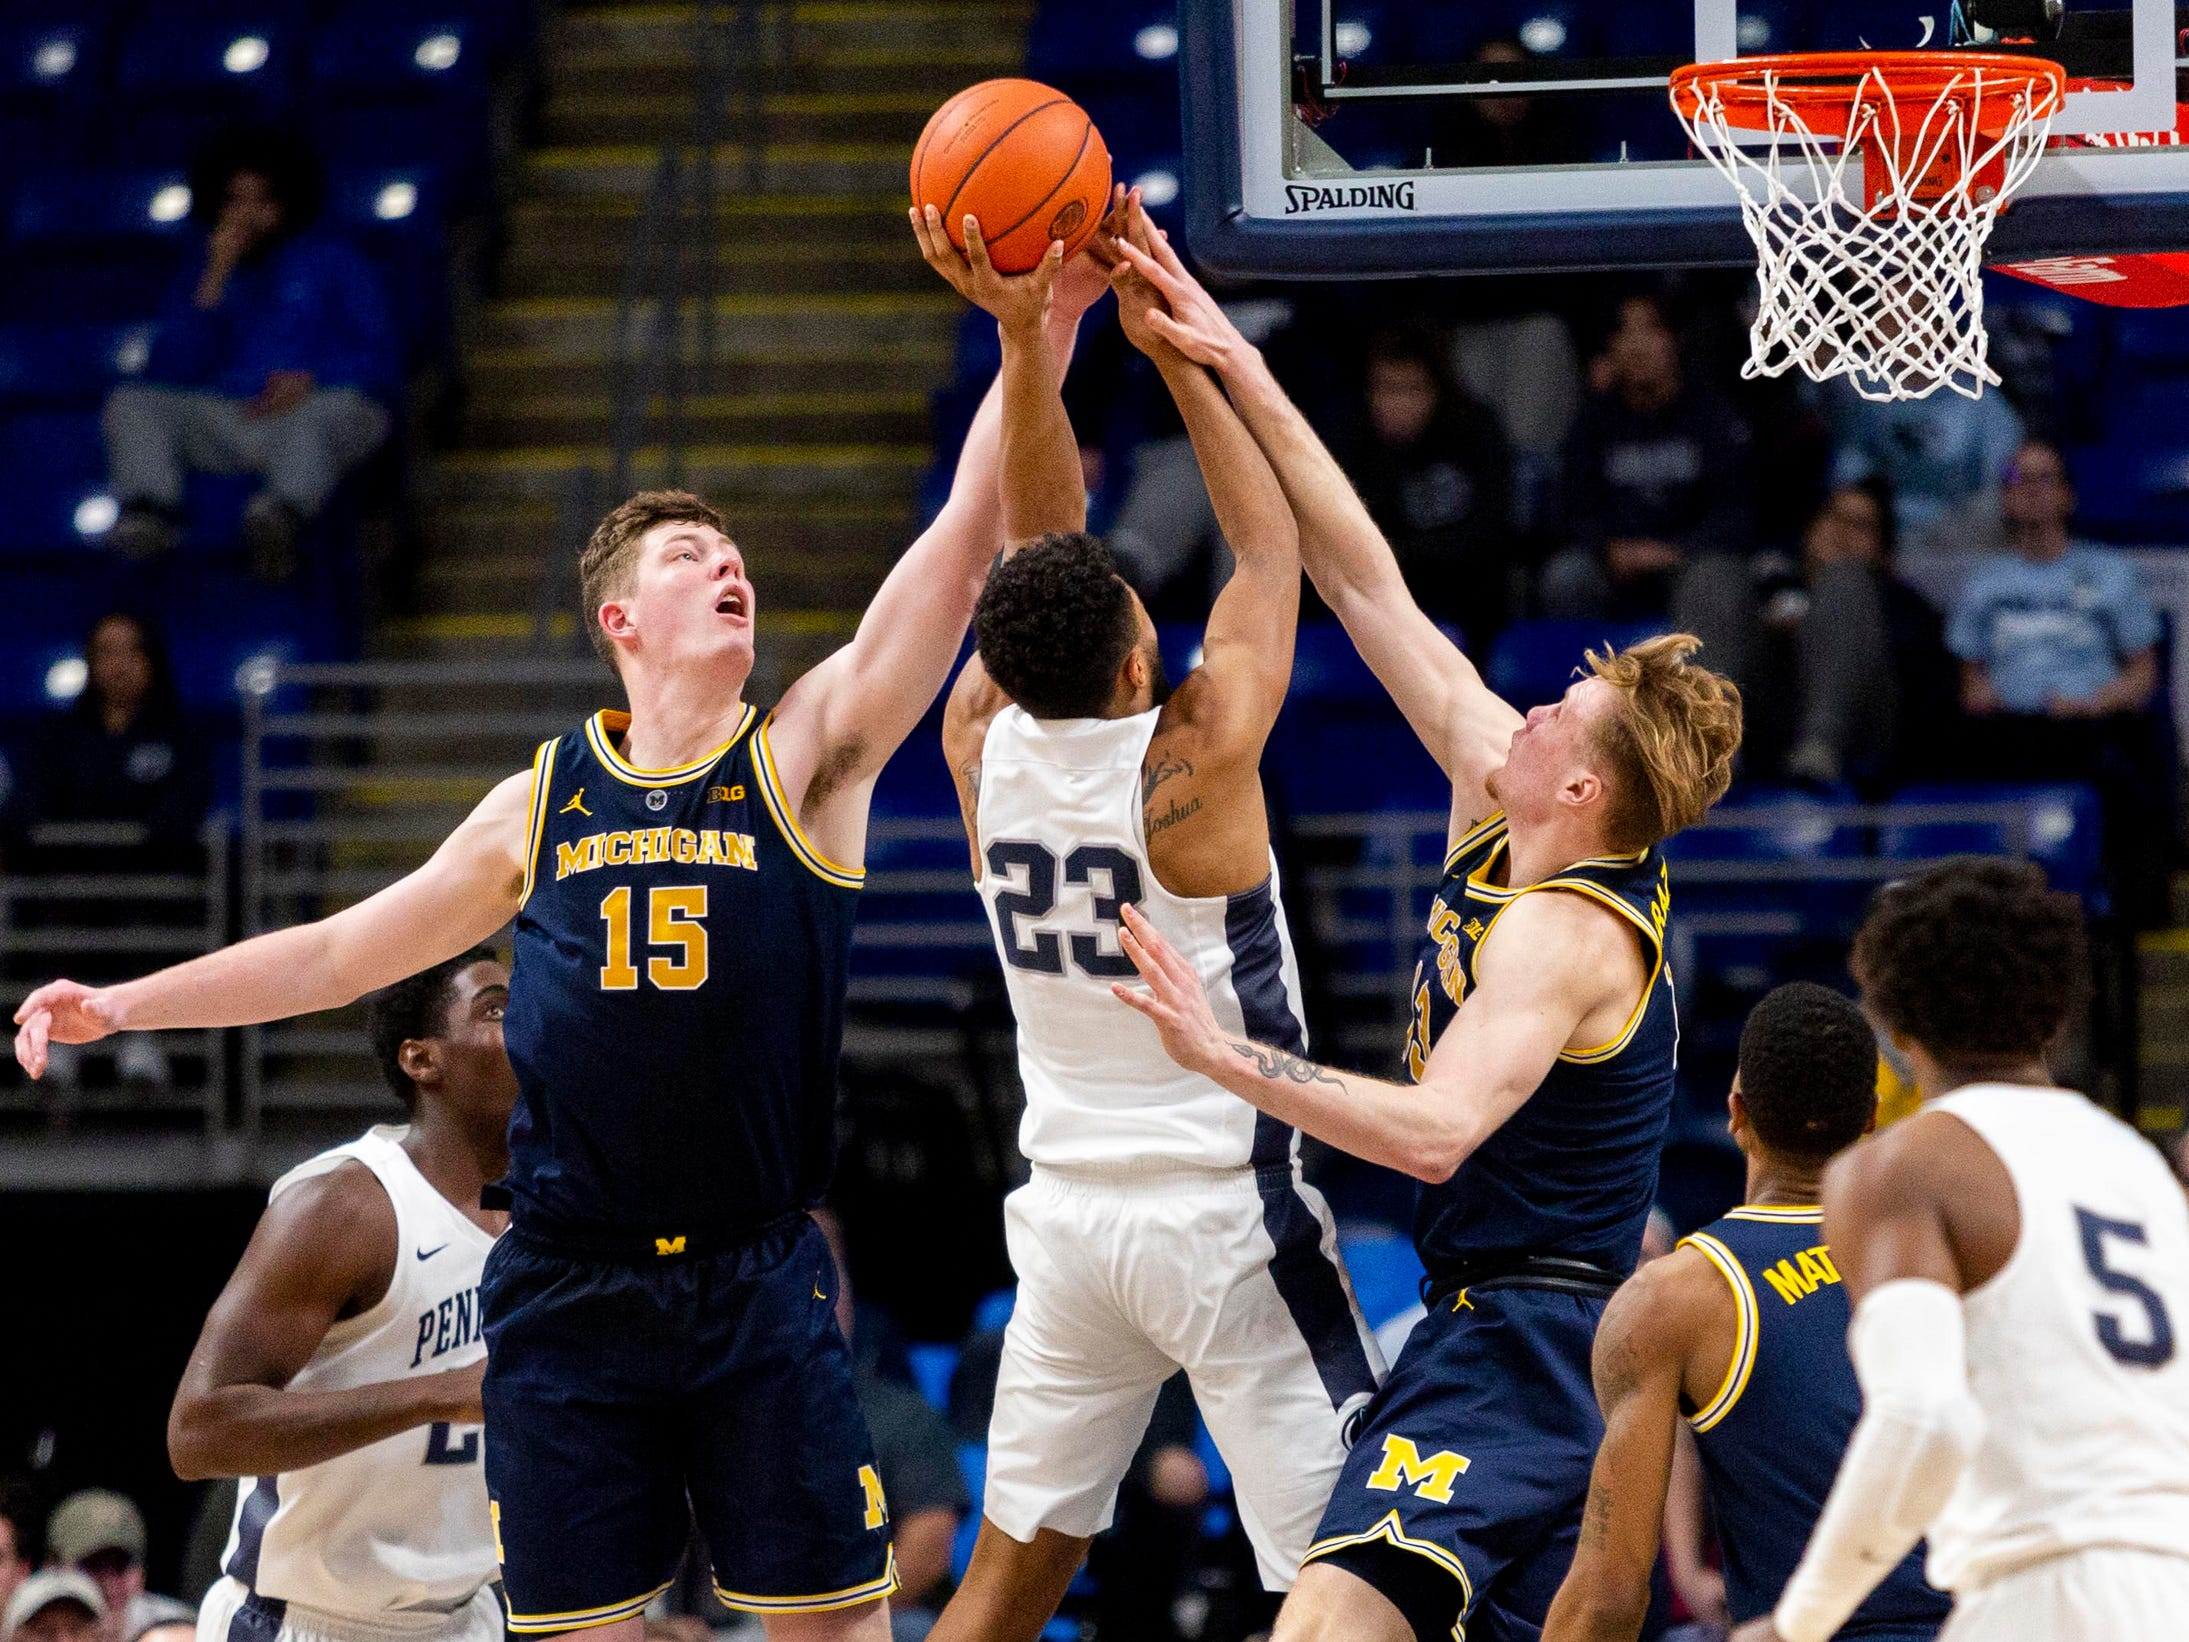 Penn State guard Josh Reaves attempts to shoot the ball past Michigan center Jon Teske, left, and forward Ignas Brazdeikis during the second half of U-M's 75-69 loss on Tuesday, Feb. 12, 2019, in State College, Pa.